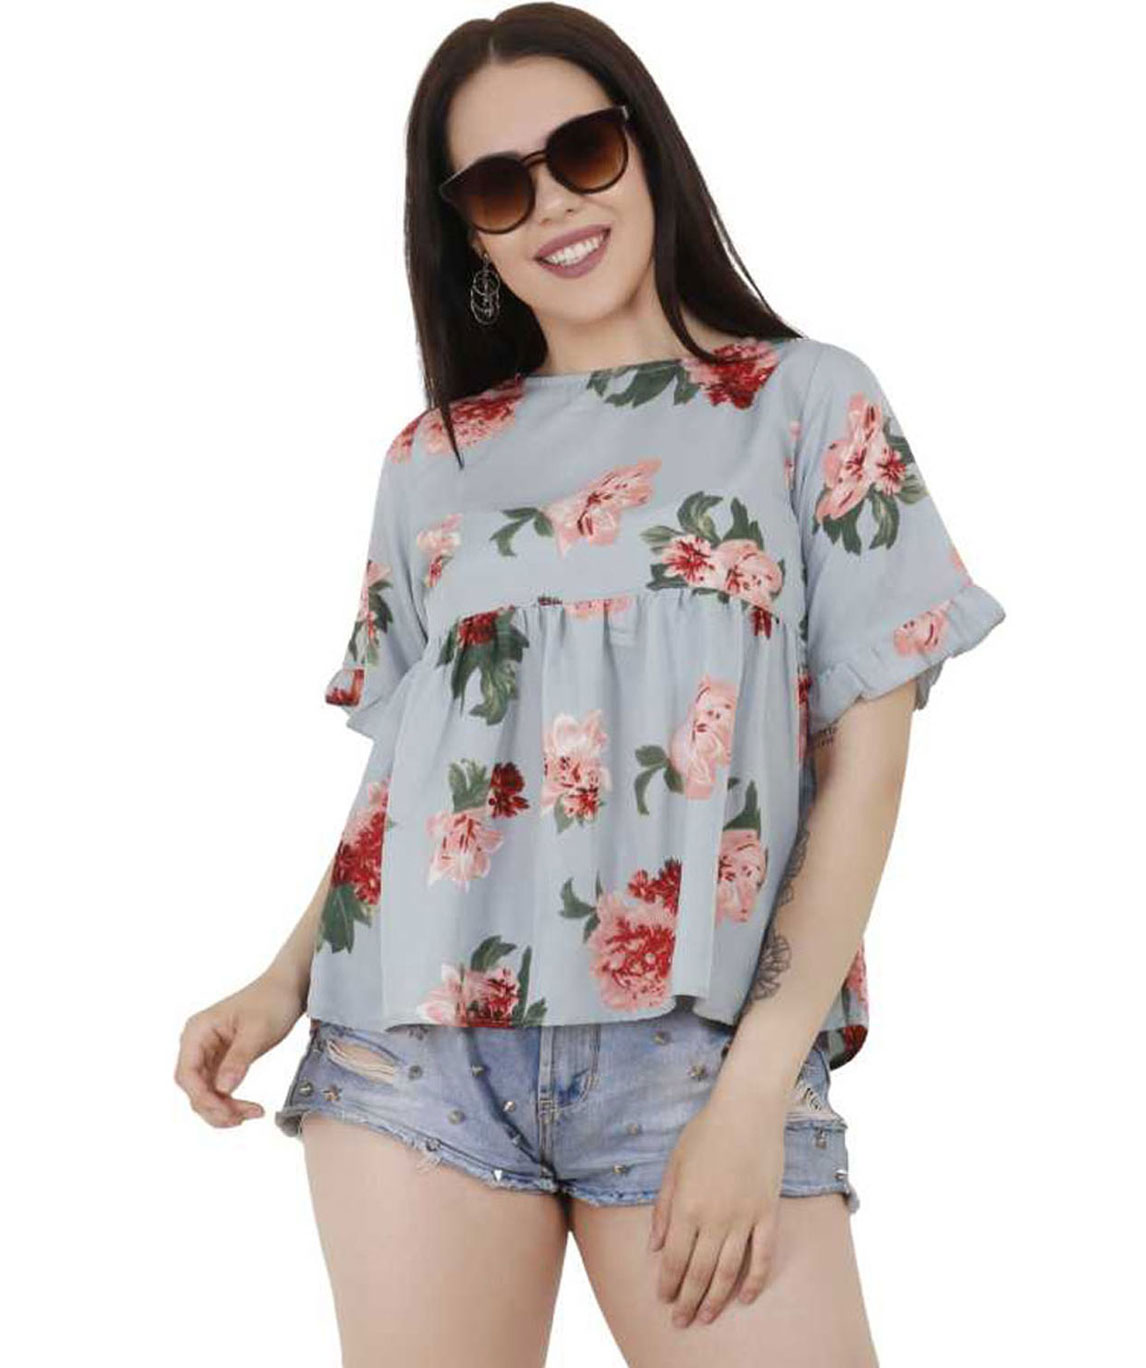 PARTY SHORT SLEEVE PRINTED WOMEN GREEN TOP